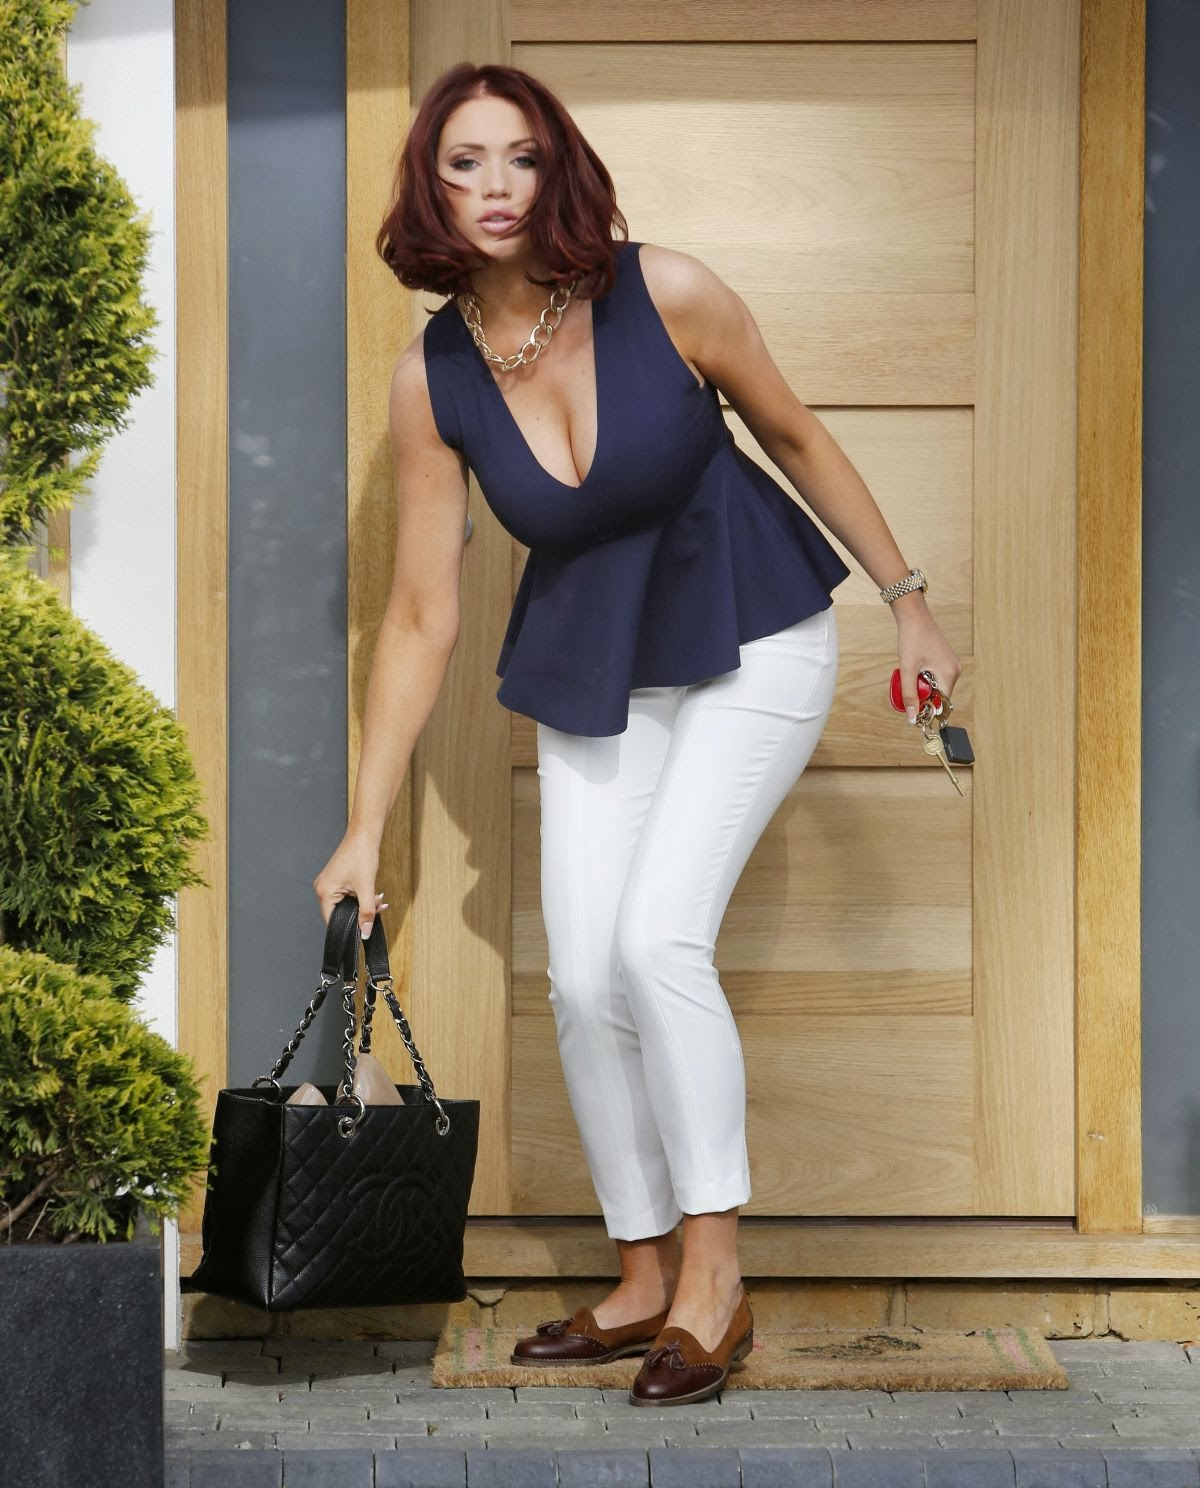 The Celebrity Oops Digest: Amy Childs gave big boob